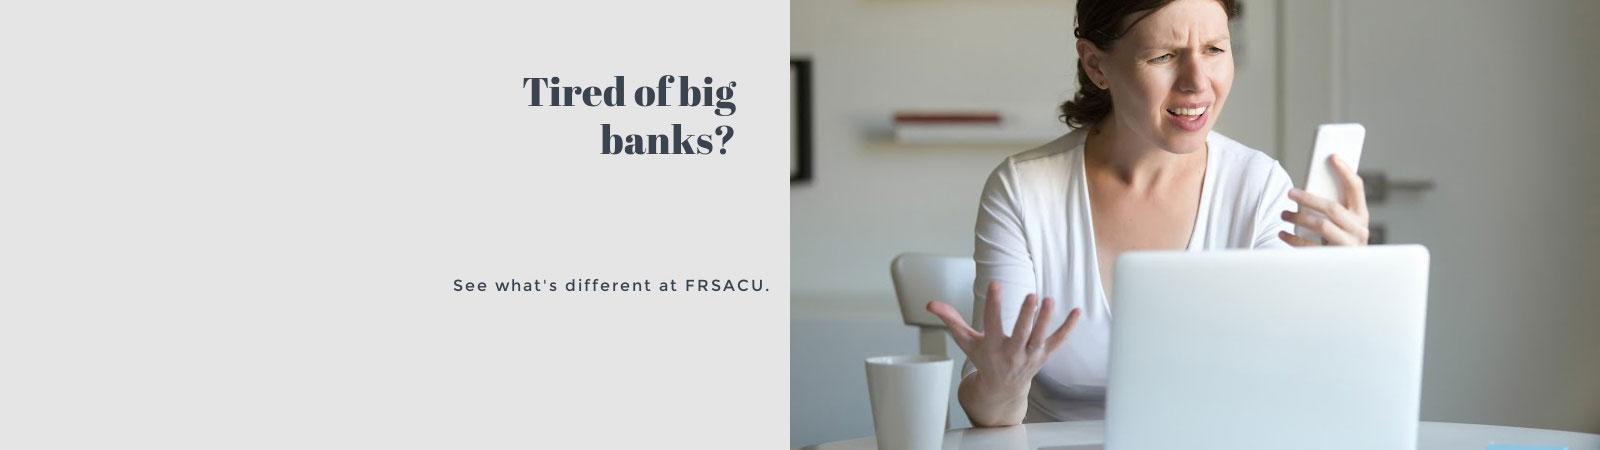 Tired of big banks? See what's different at FRSA